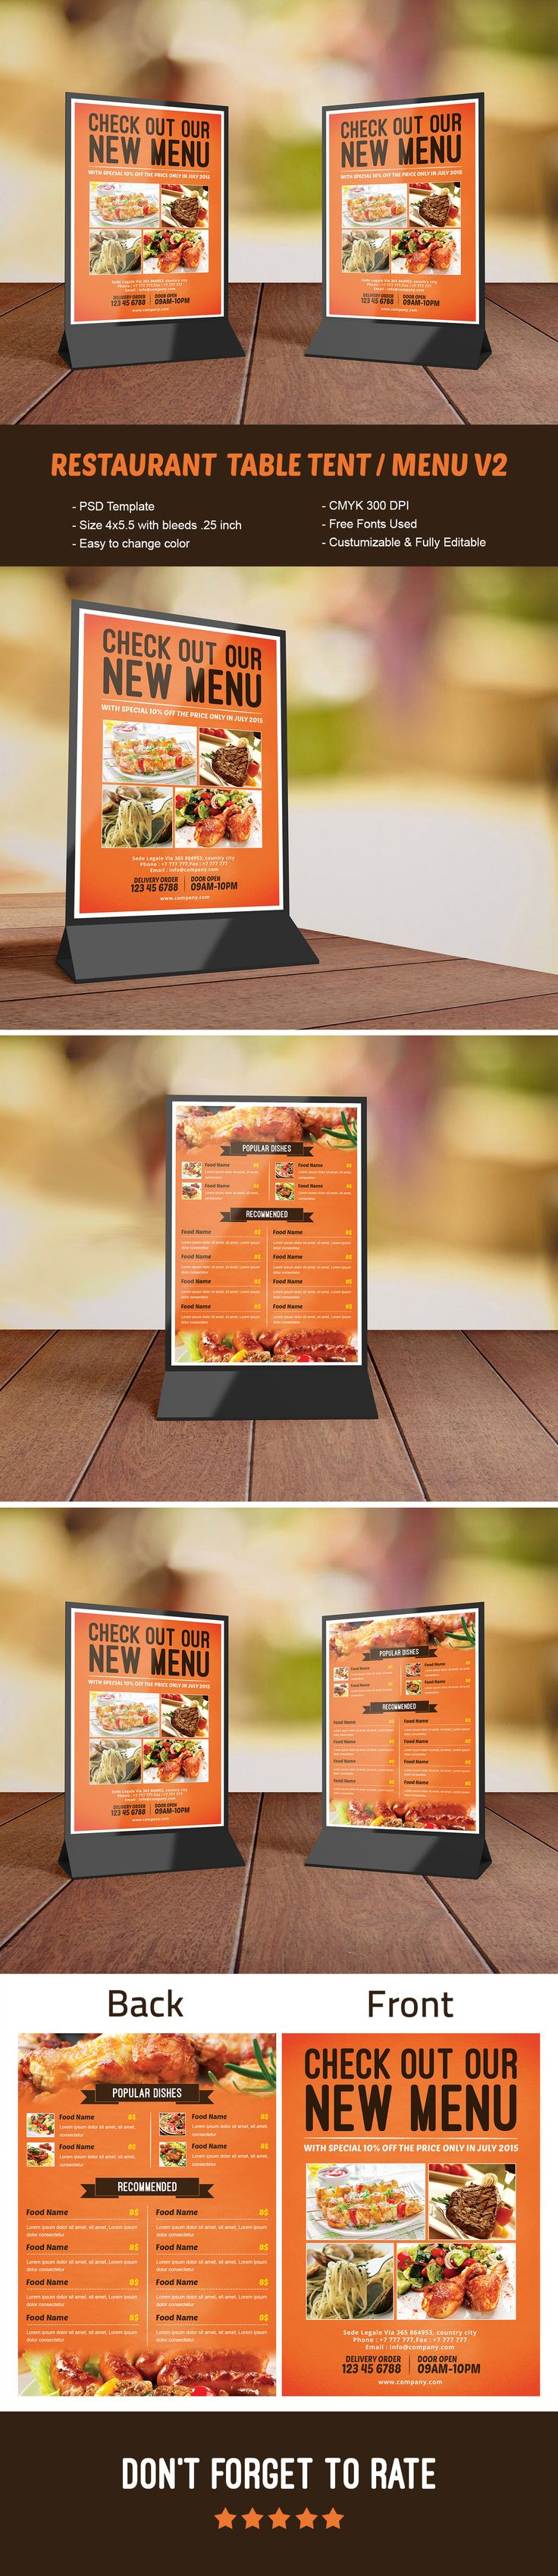 Restaurant Table Tents Holaklonecco - Restaurant table tent template